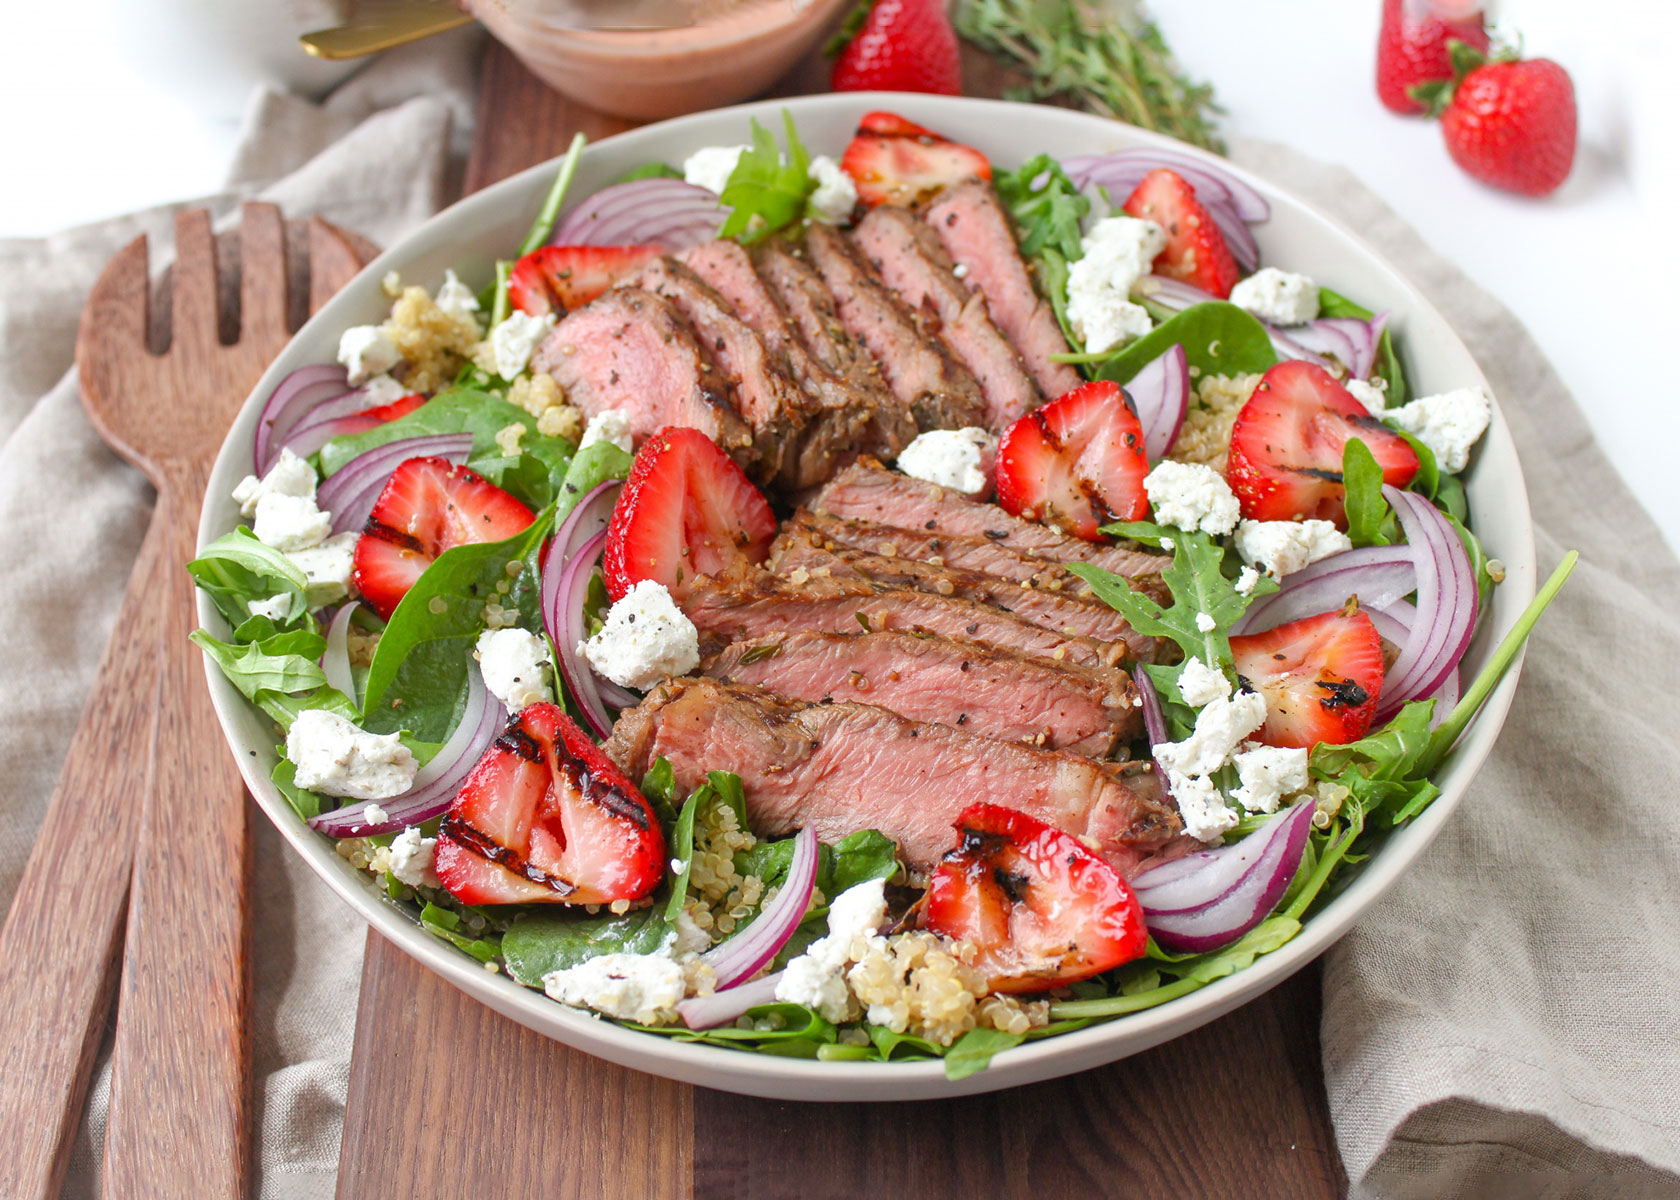 11-steak-and-salad